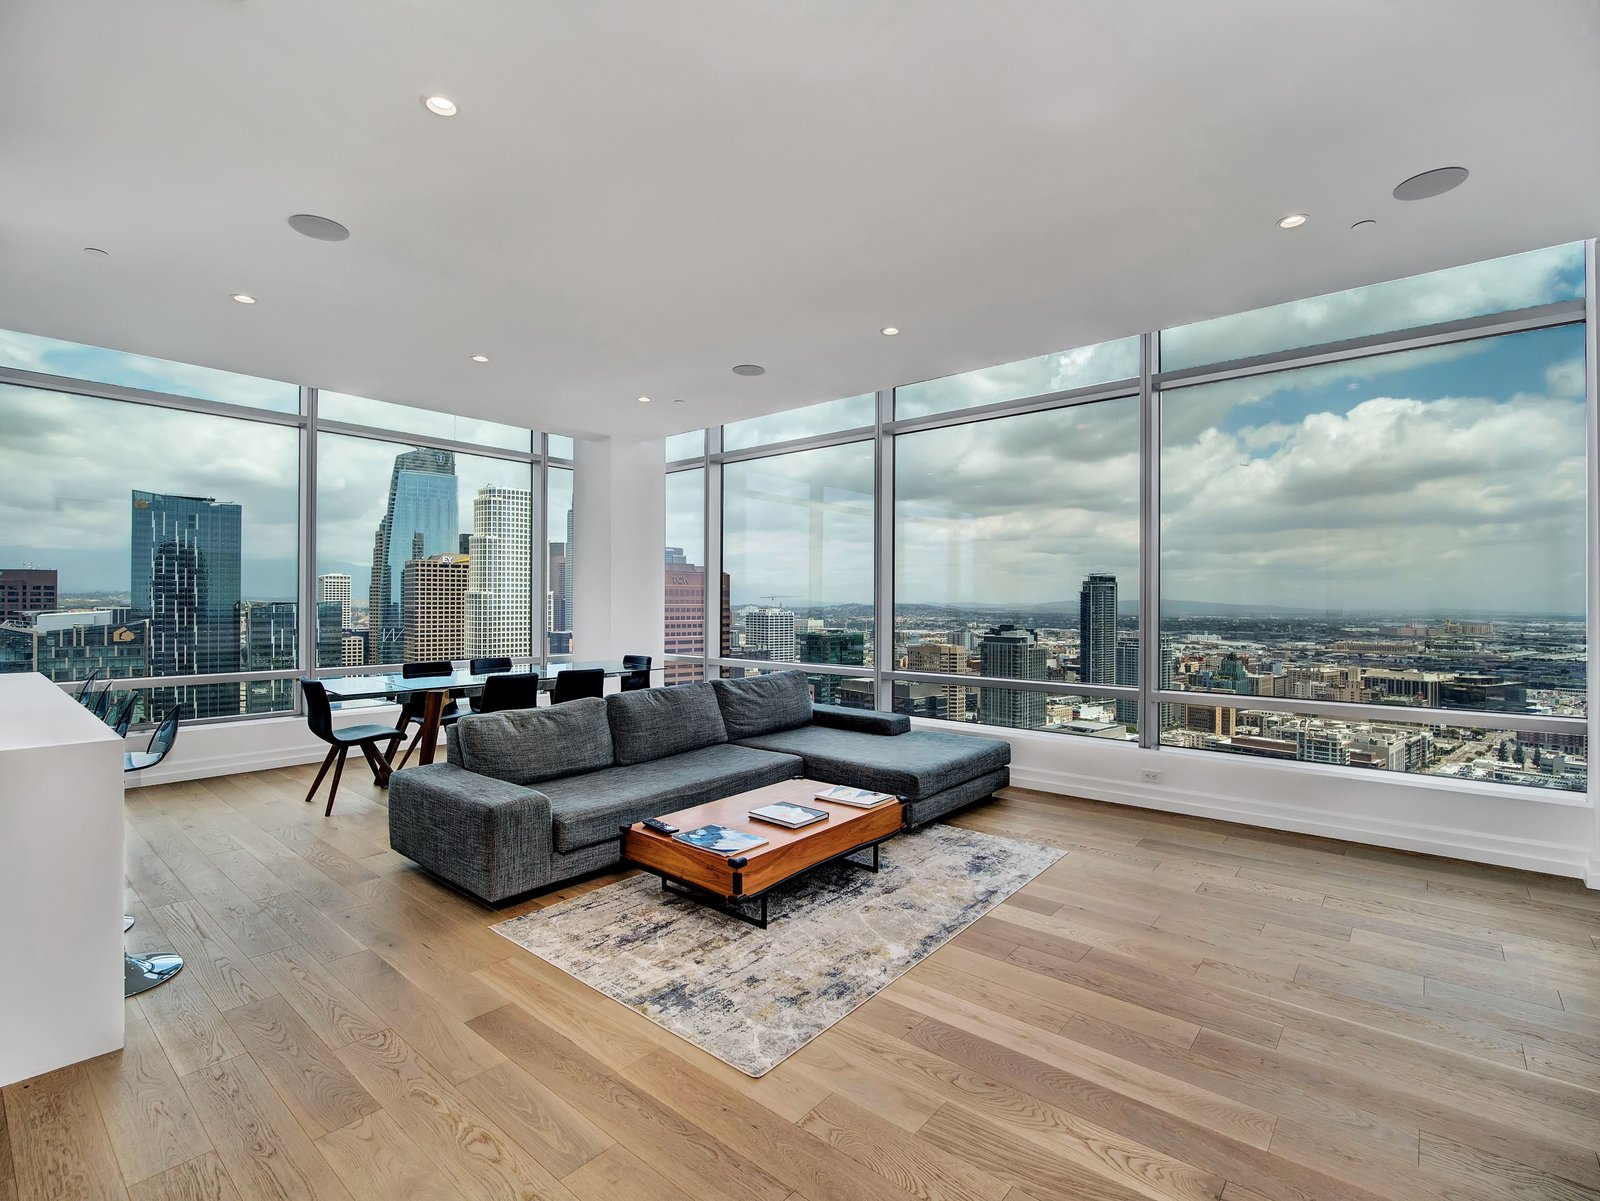 900 W Olympic Blvd Modern Home In, Laminate Flooring Downtown Los Angeles